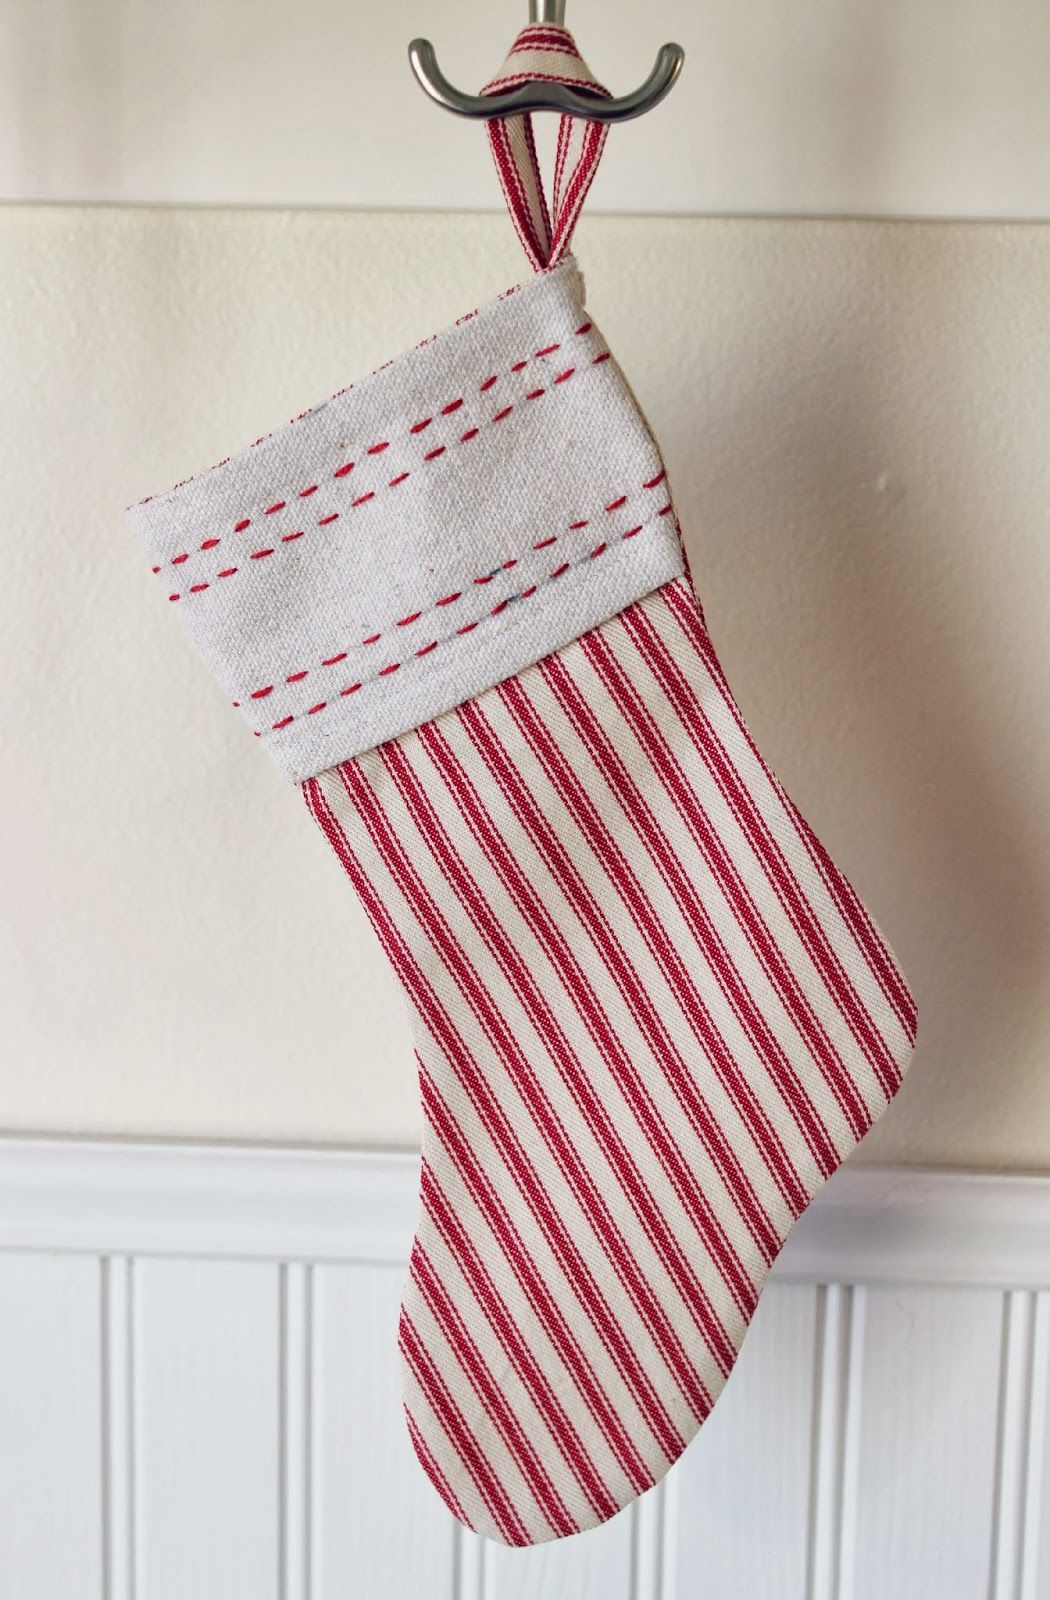 4cd044125cf 18 Unique Christmas Stockings - Best DIY Ideas for Holiday Stockings